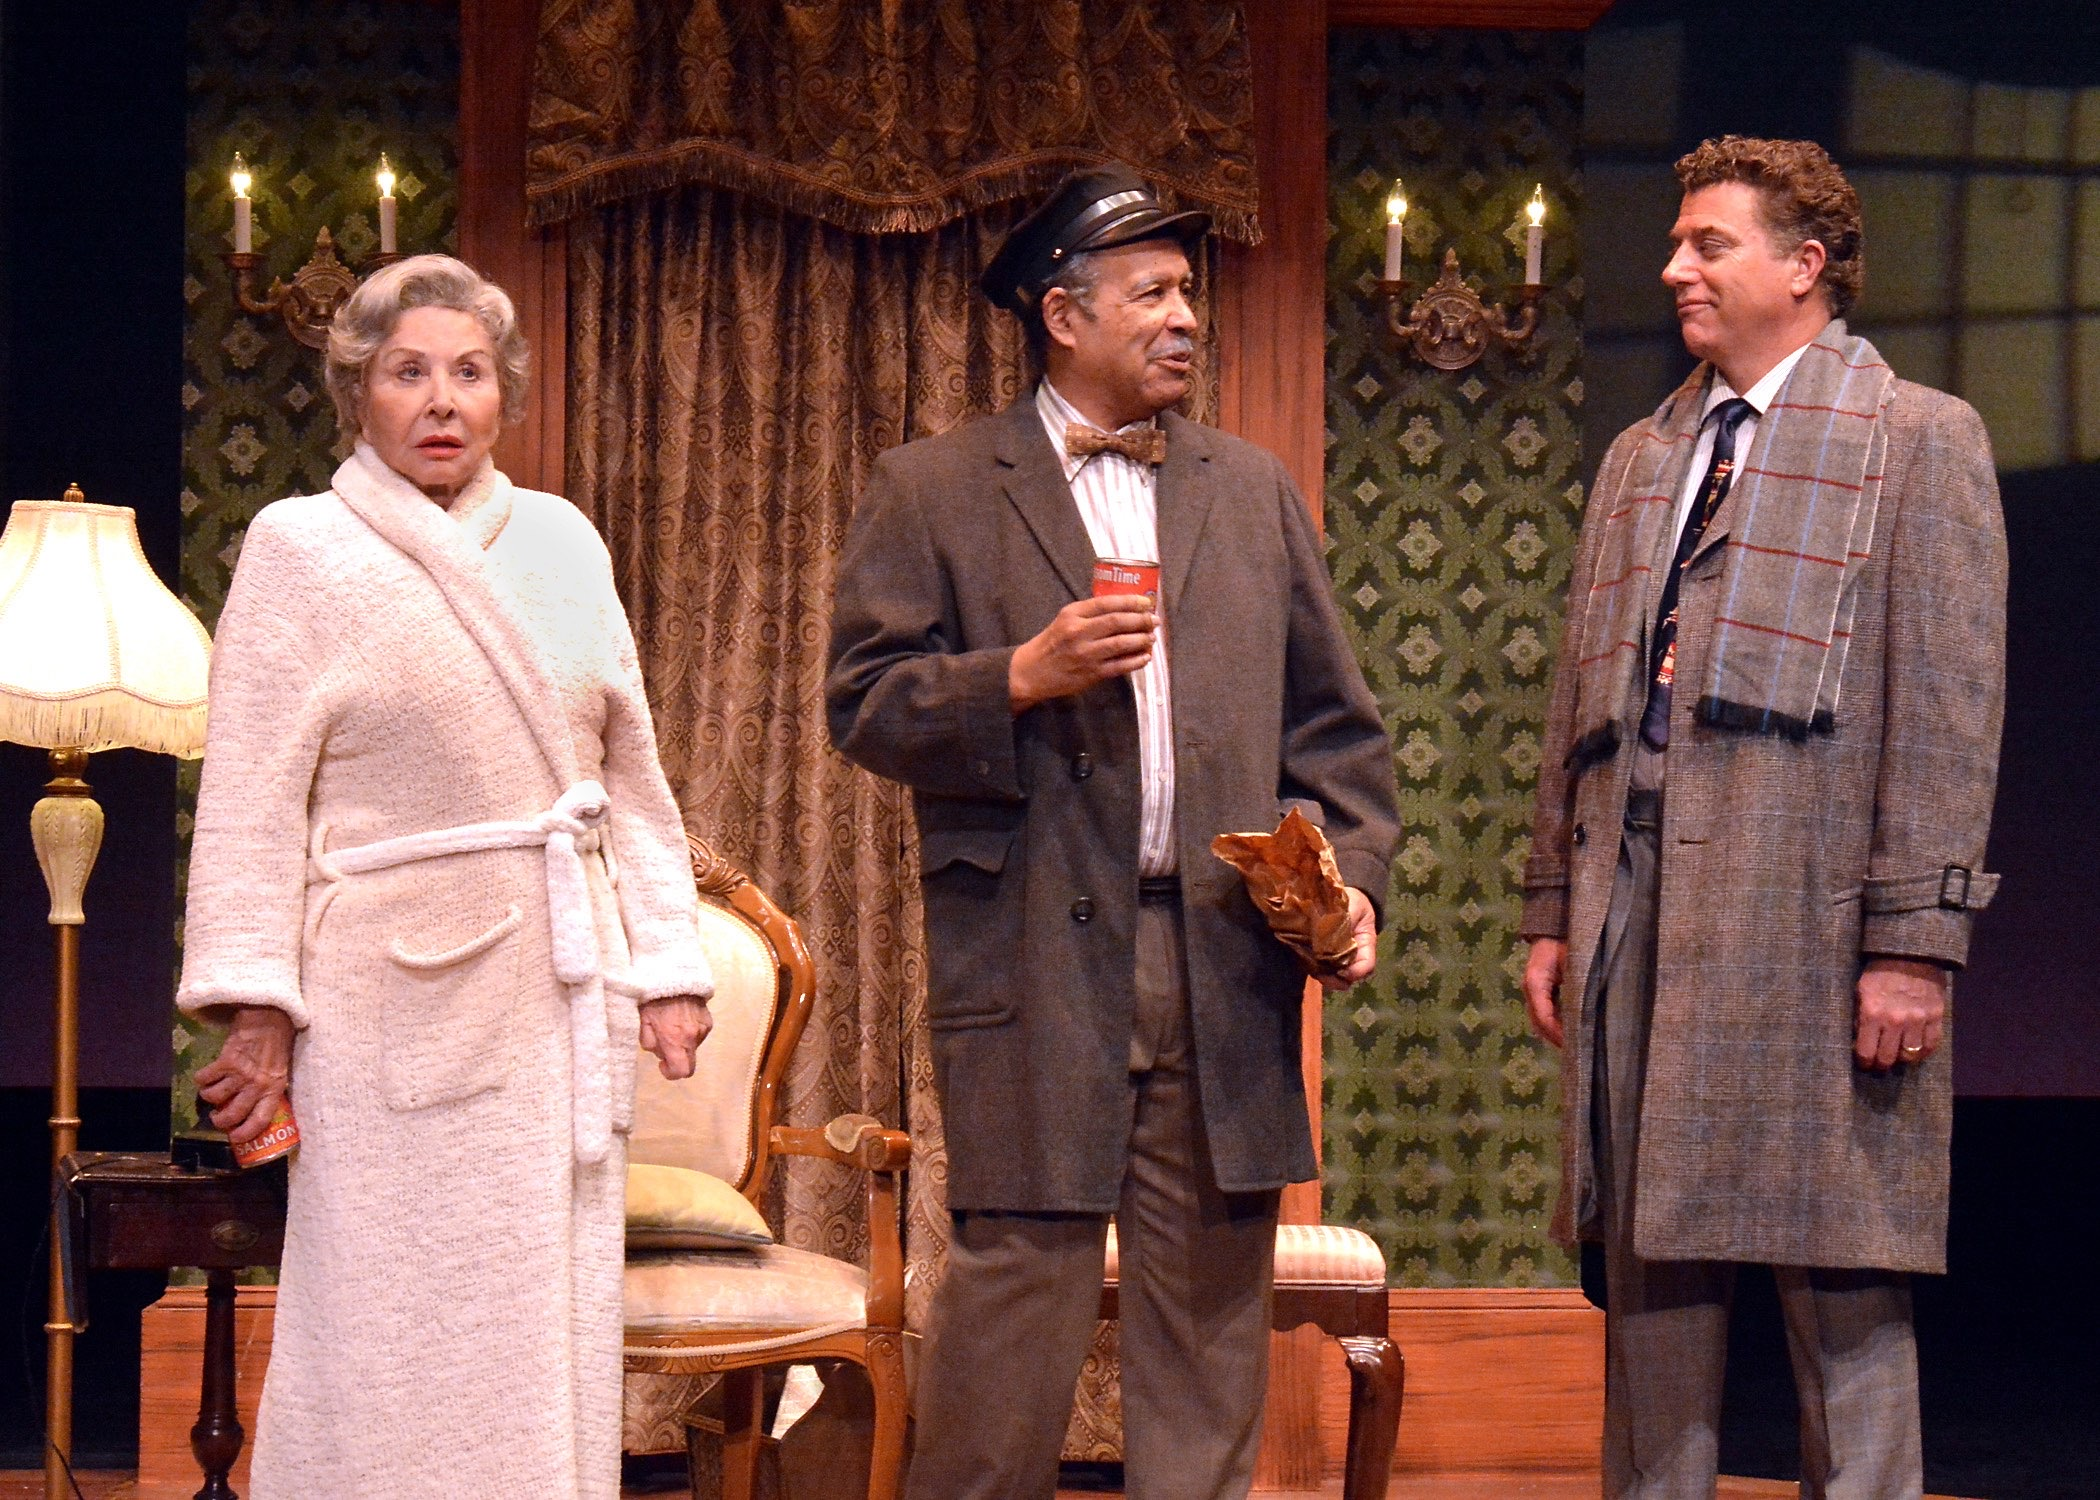 With Michael Learned (Daisy) and Lance Nichols (Hoke) in Driving Miss Daisy.